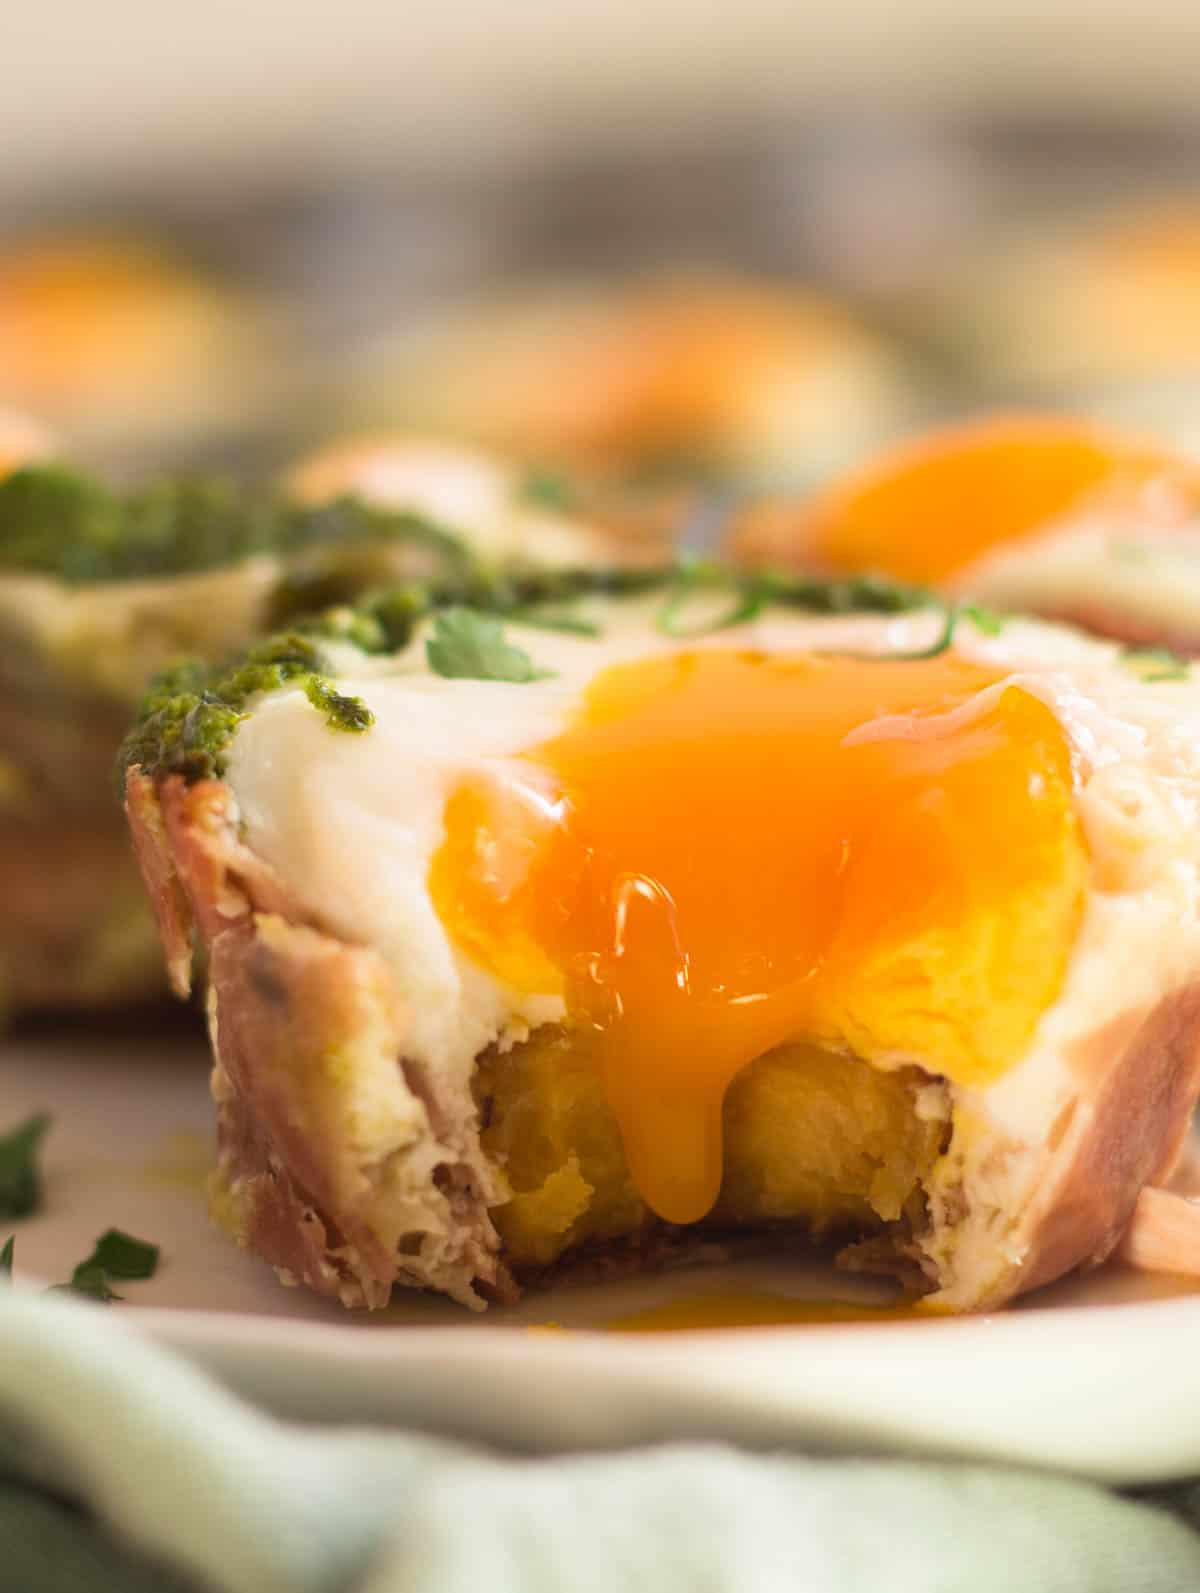 Close up of prosciutto egg cup with a bit taken out of it and the yolk running down